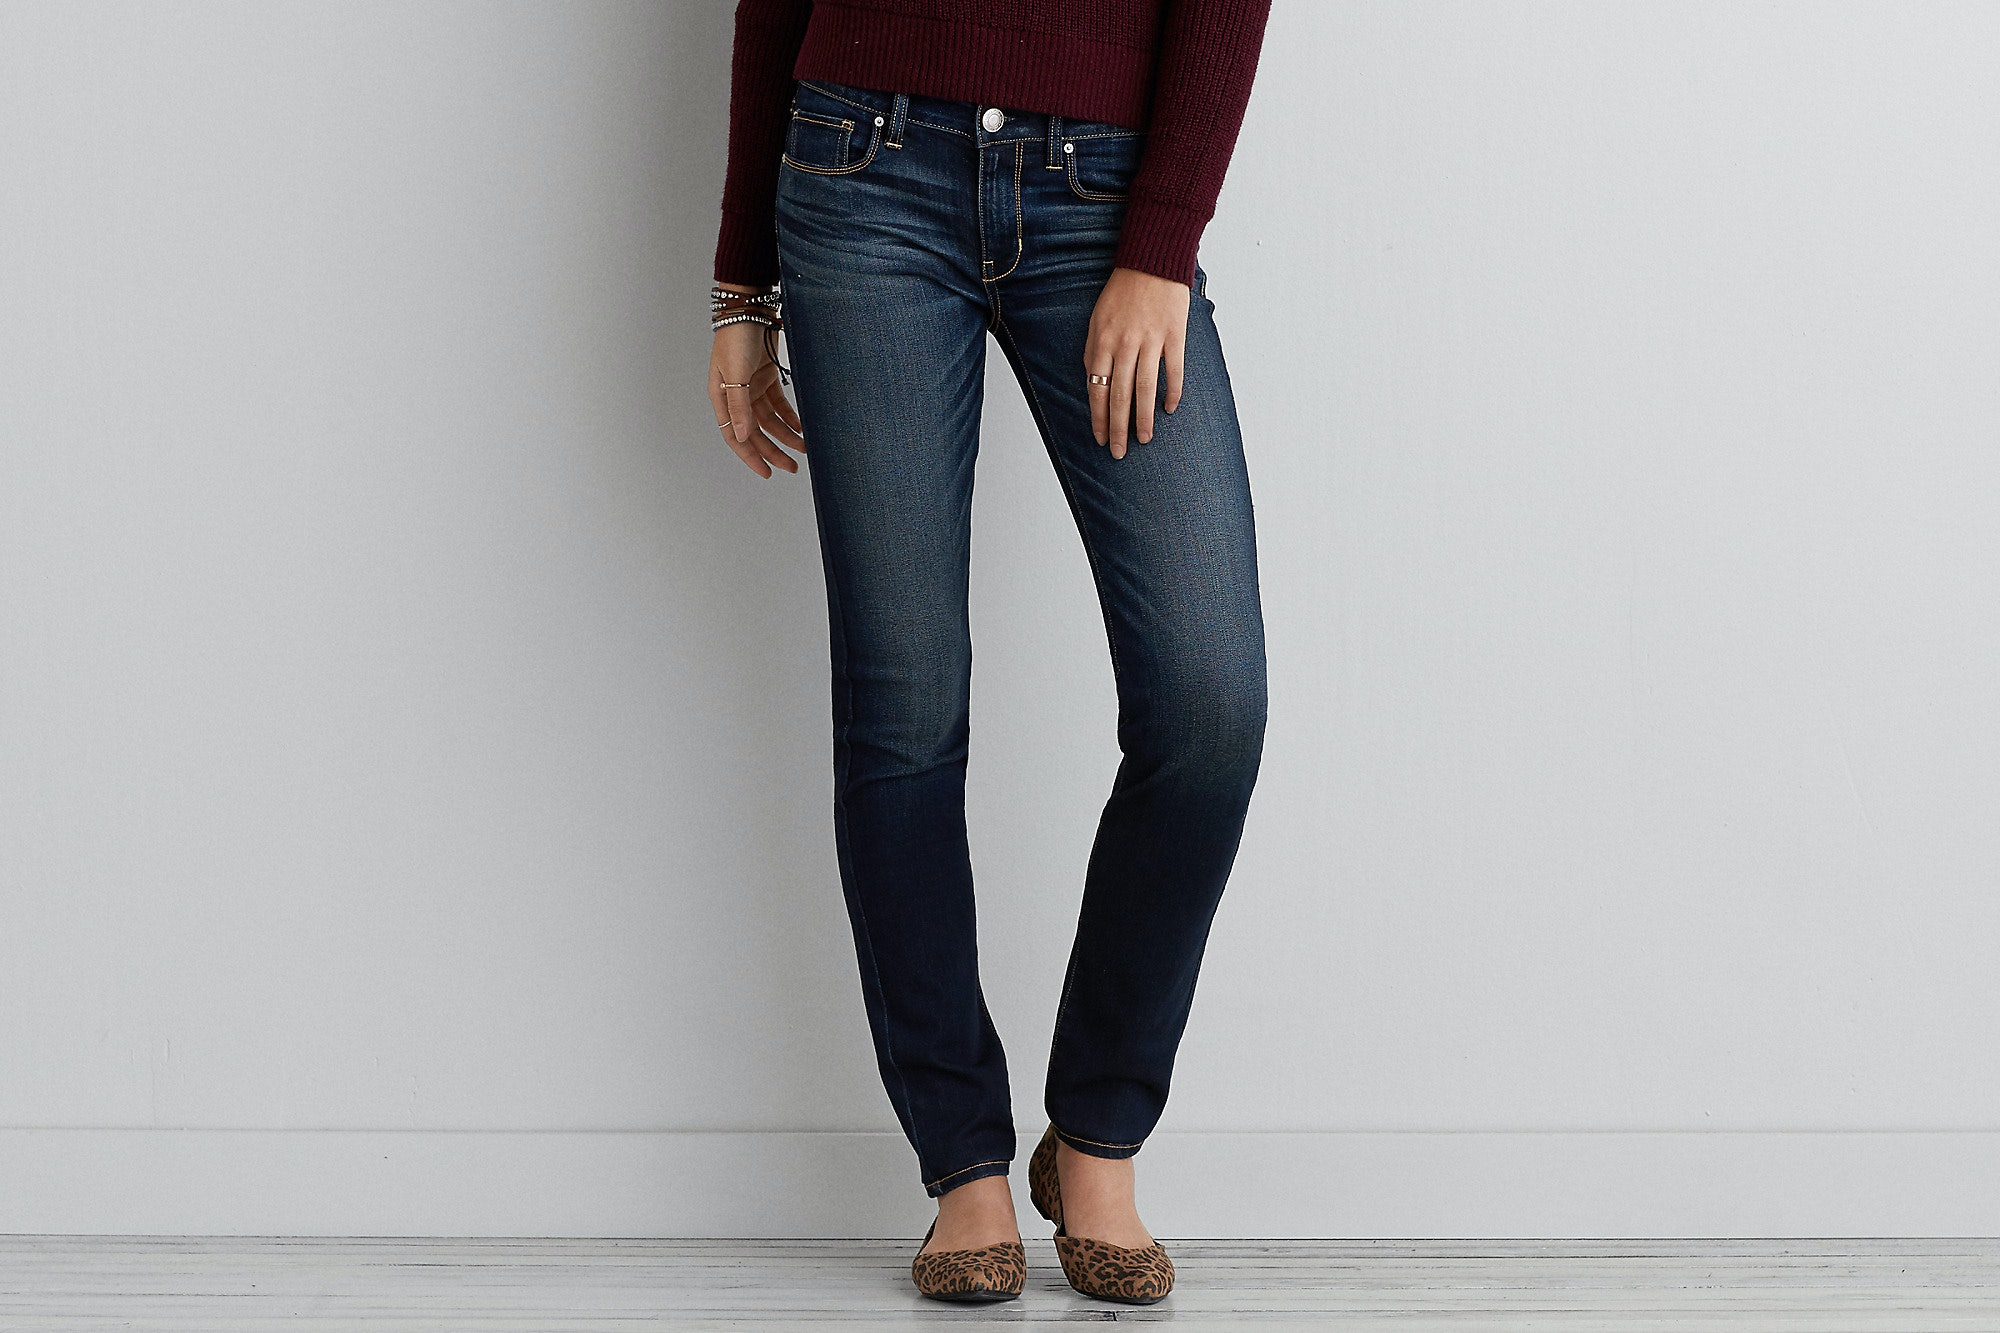 5b0d72d55c73b The 10 Most Comfortable Skinny Jeans According To Real People